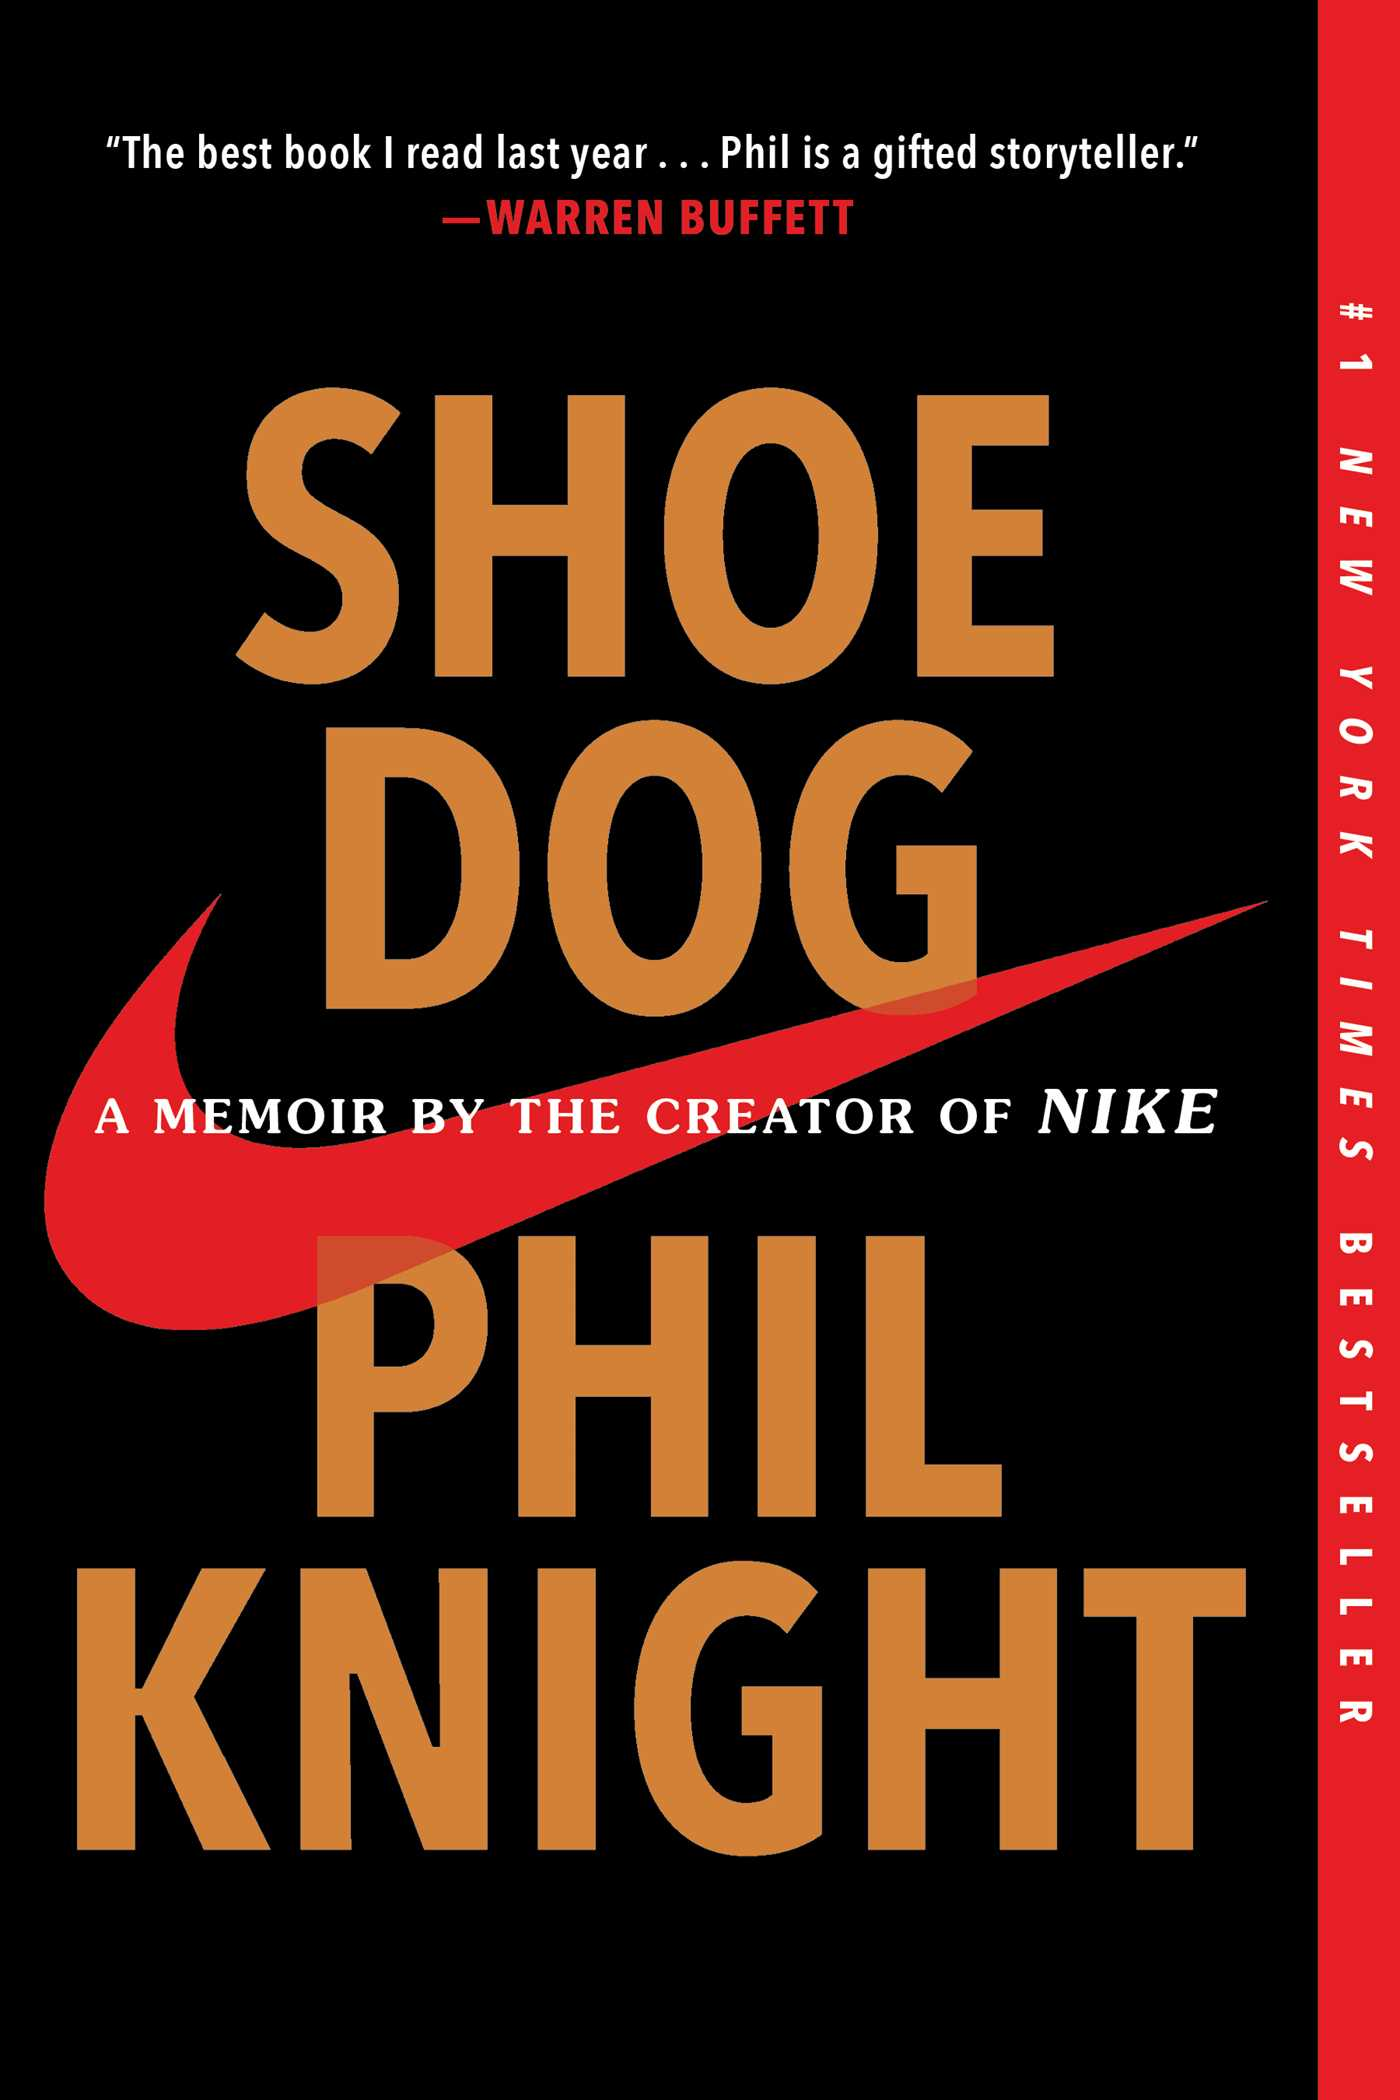 The cover of the book Shoe Dog